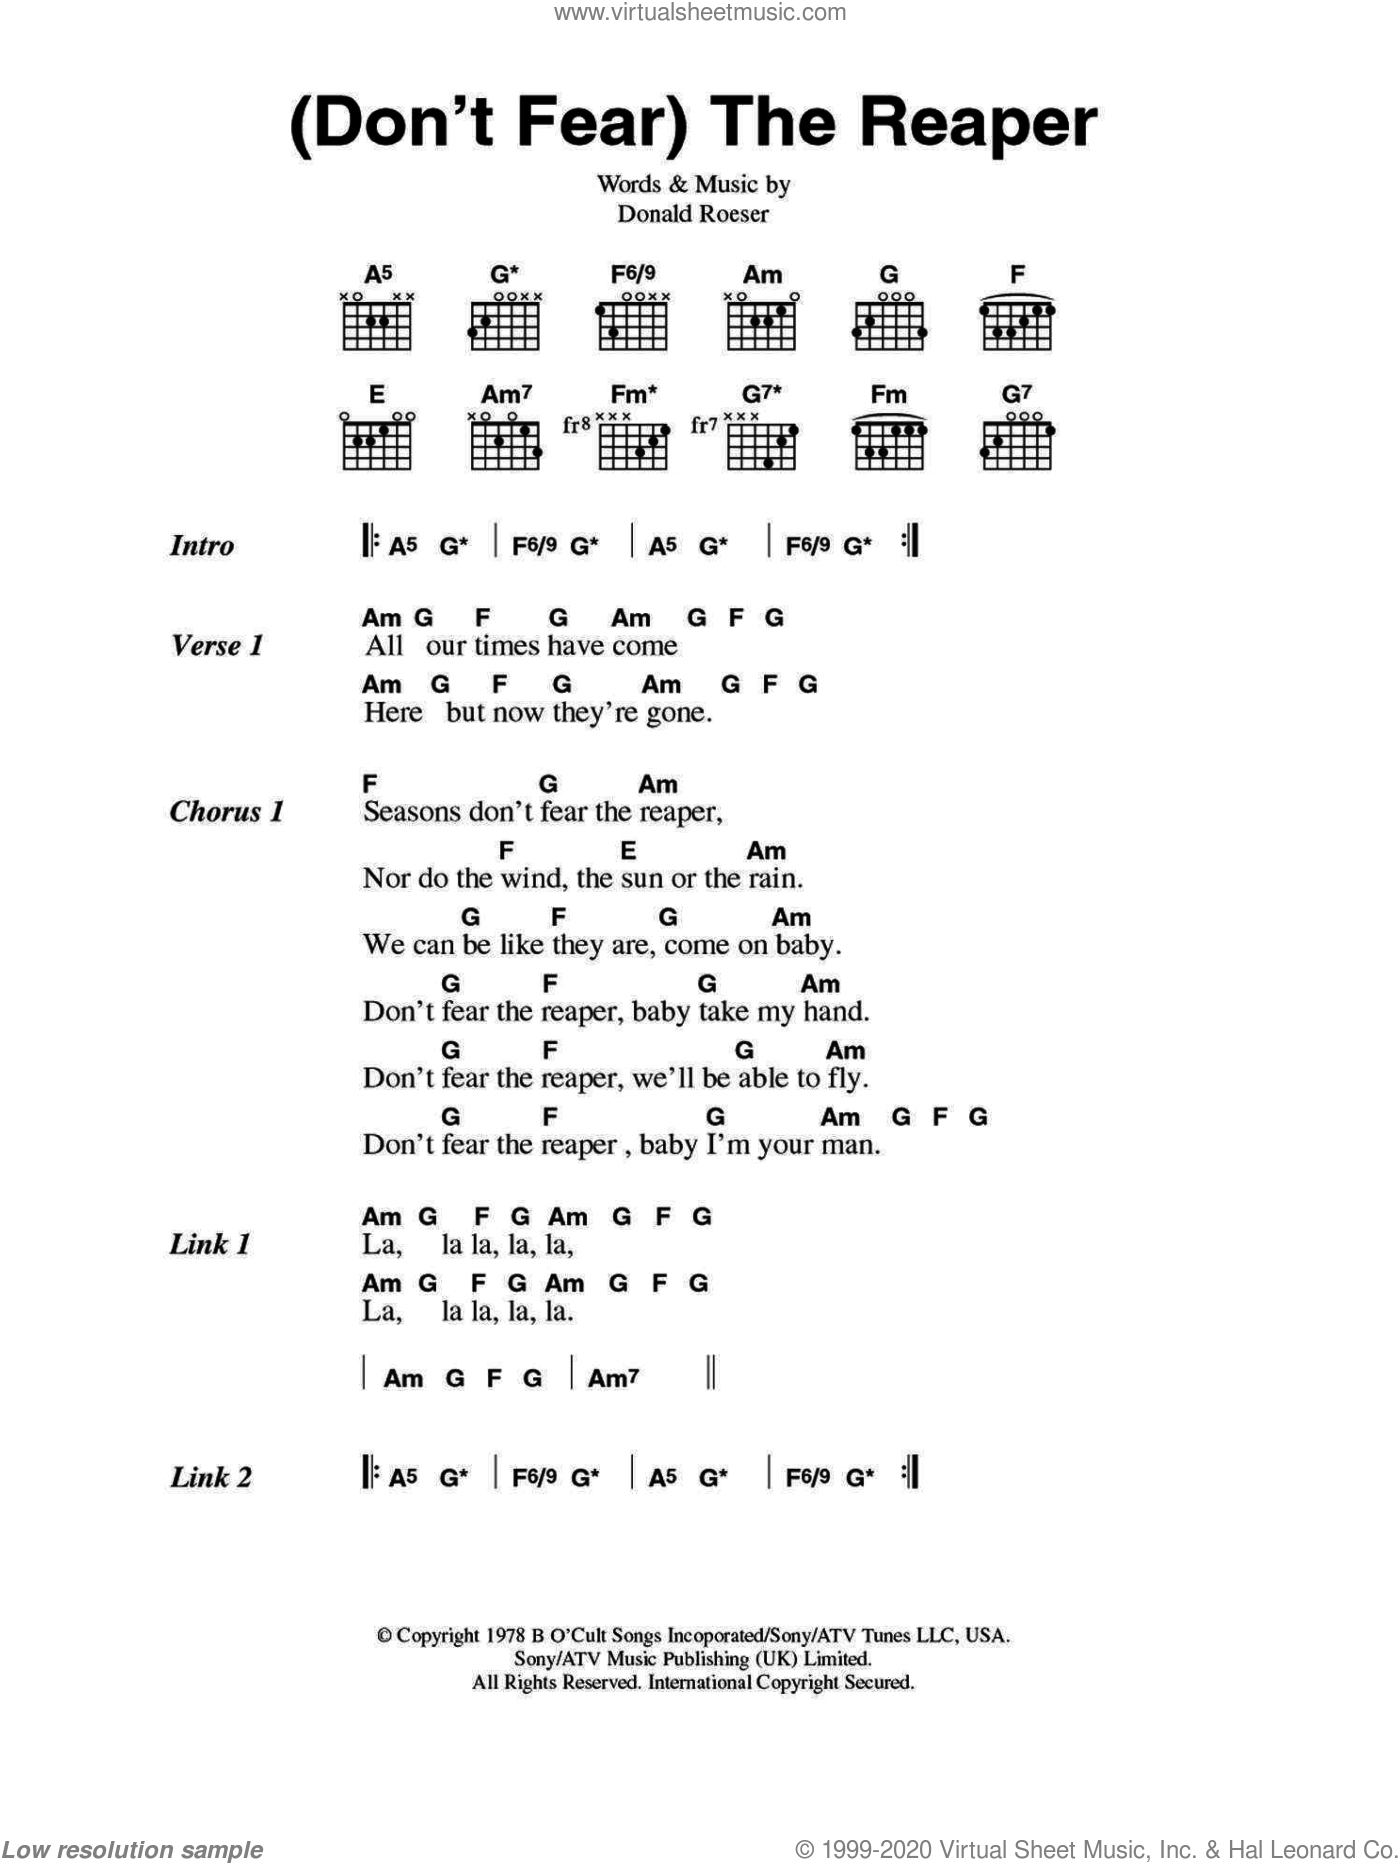 (Don't Fear) The Reaper sheet music for guitar (chords) by Donald Roeser and Blue Oyster Cult. Score Image Preview.